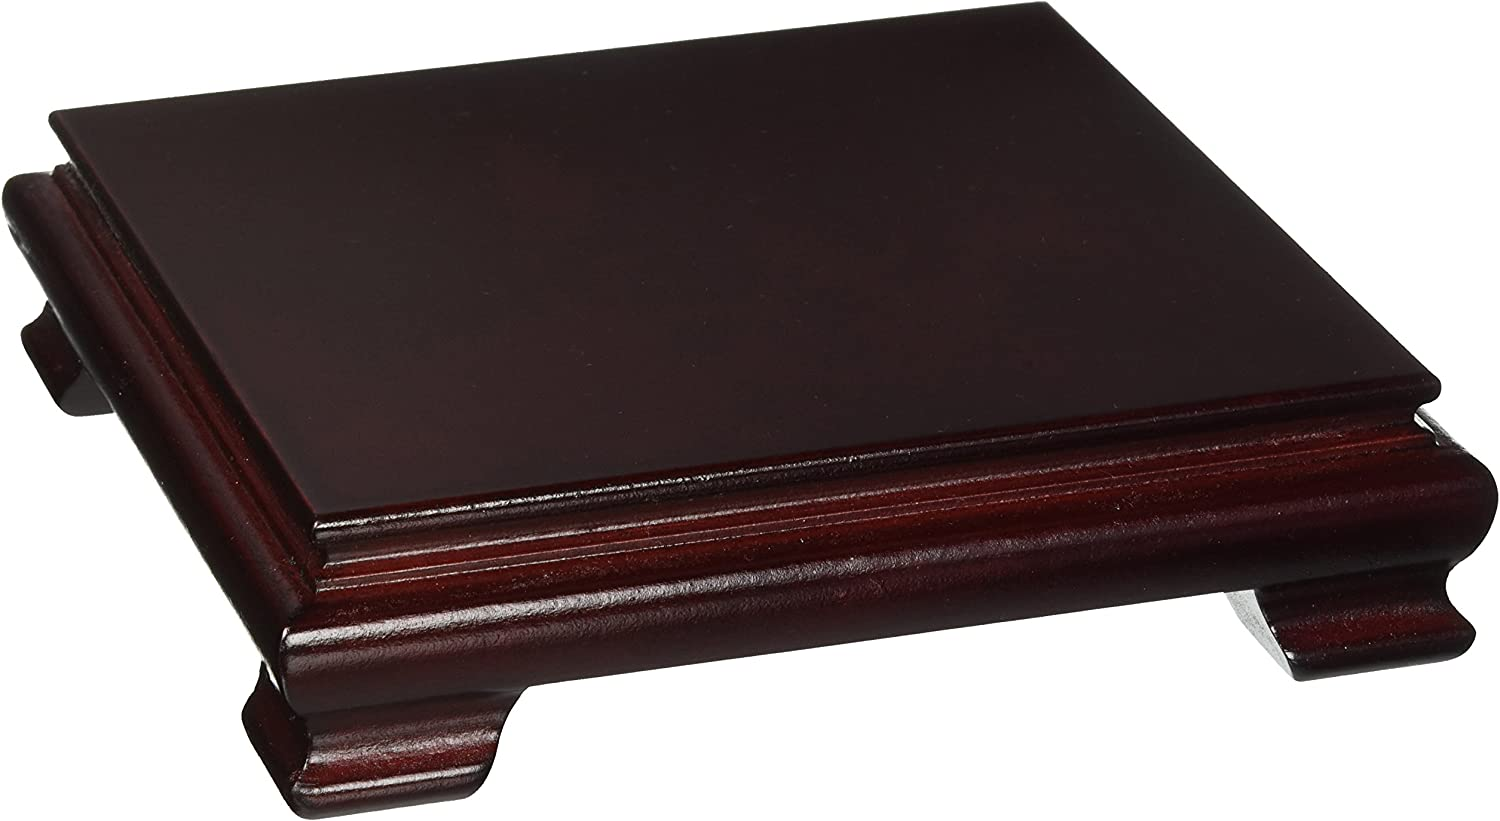 Oriental Furniture Rosewood Vase Stand - 5.5 Base Diam Topics on TV Max 66% OFF Size in.